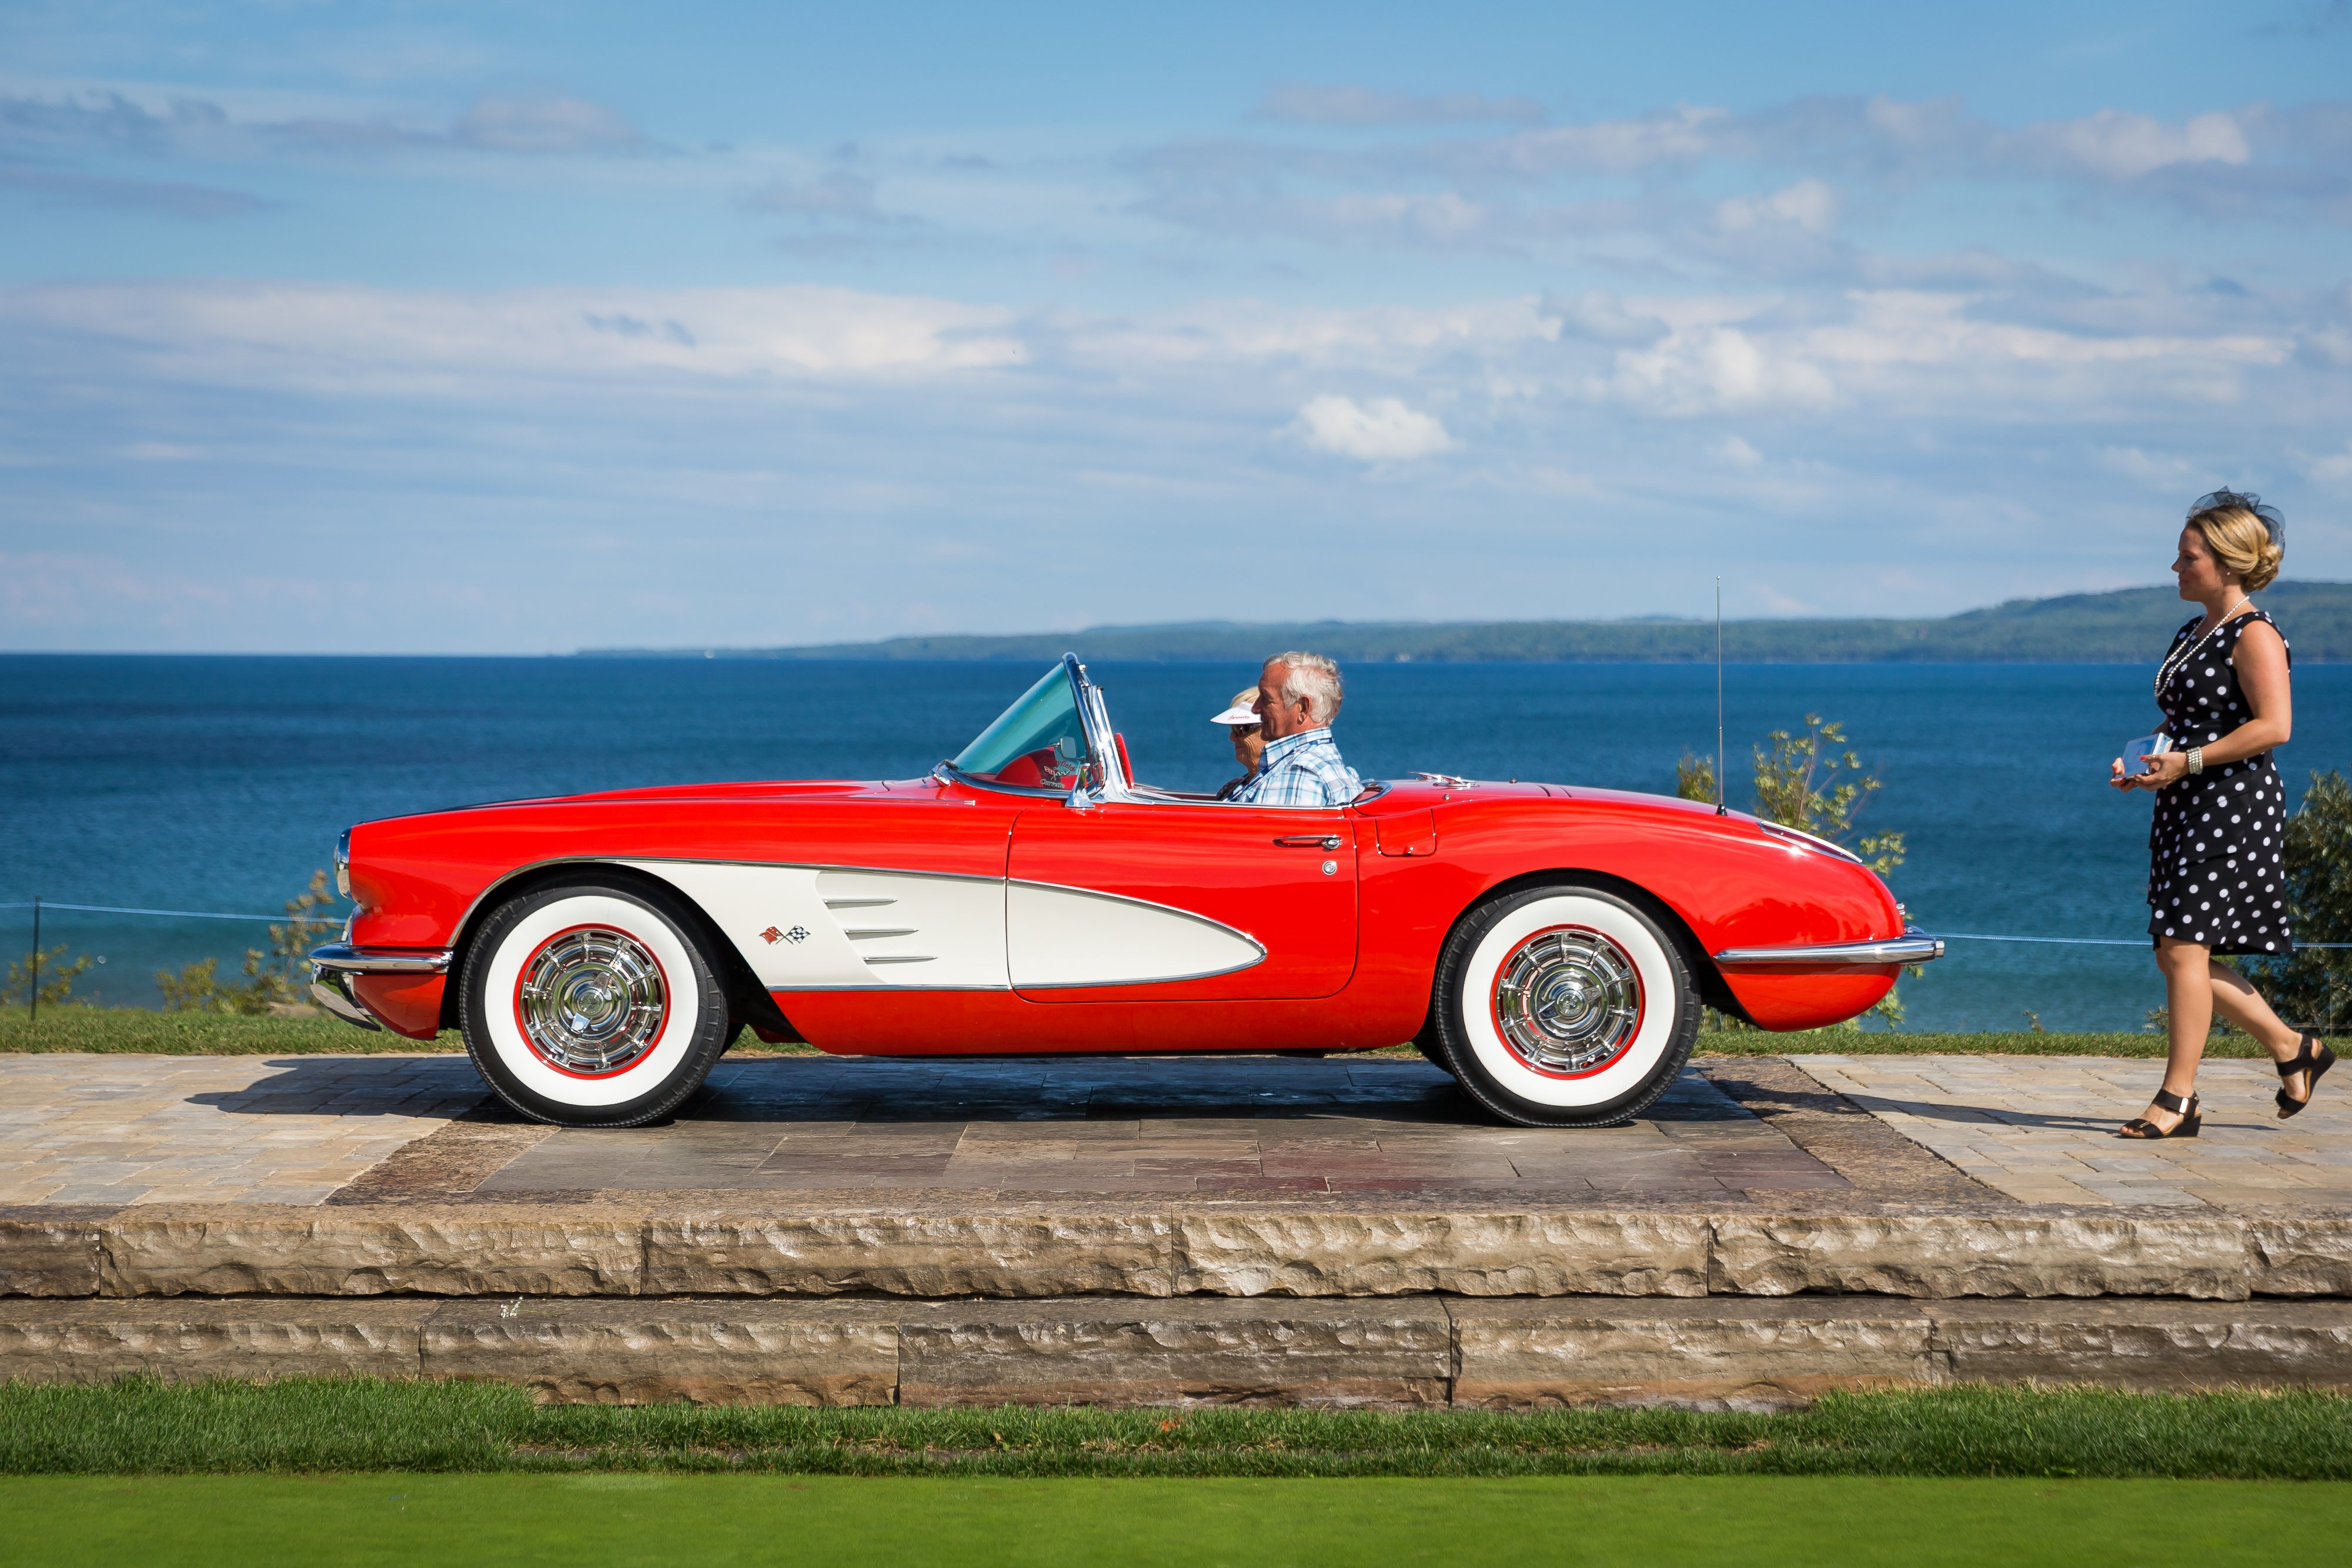 1960 Chevrolet Corvette - 2nd